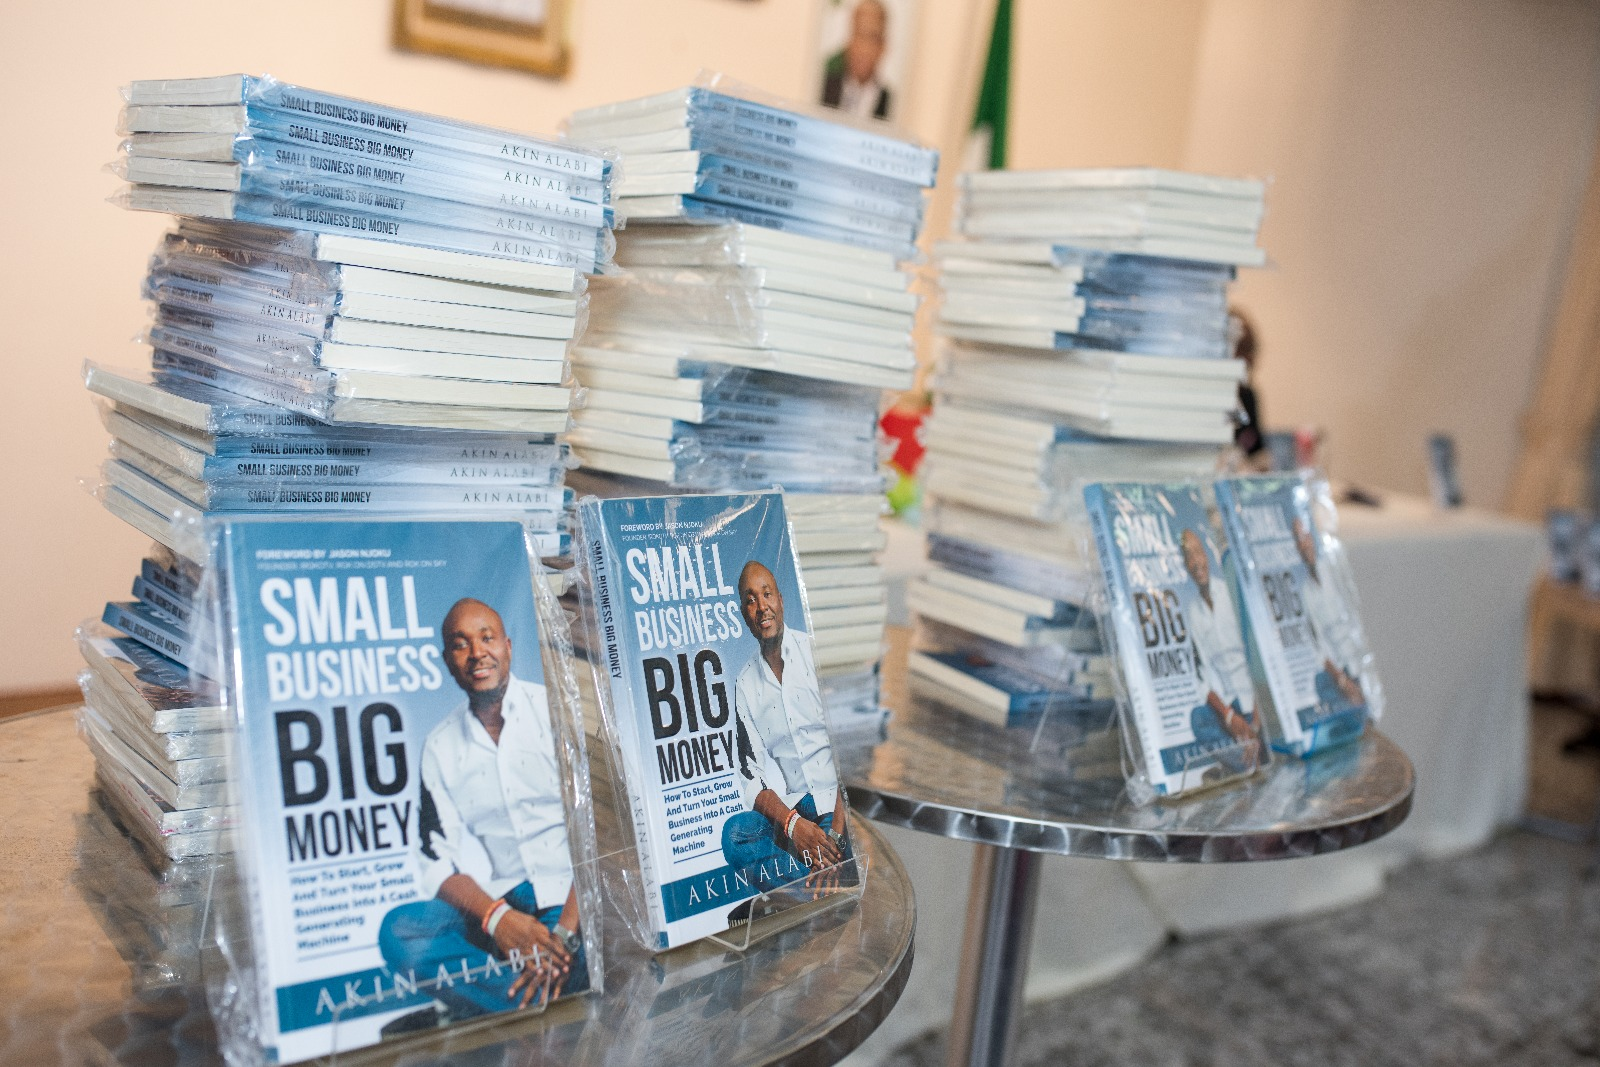 How To Order For My Book, Small Business Big Money – AkinAlabi